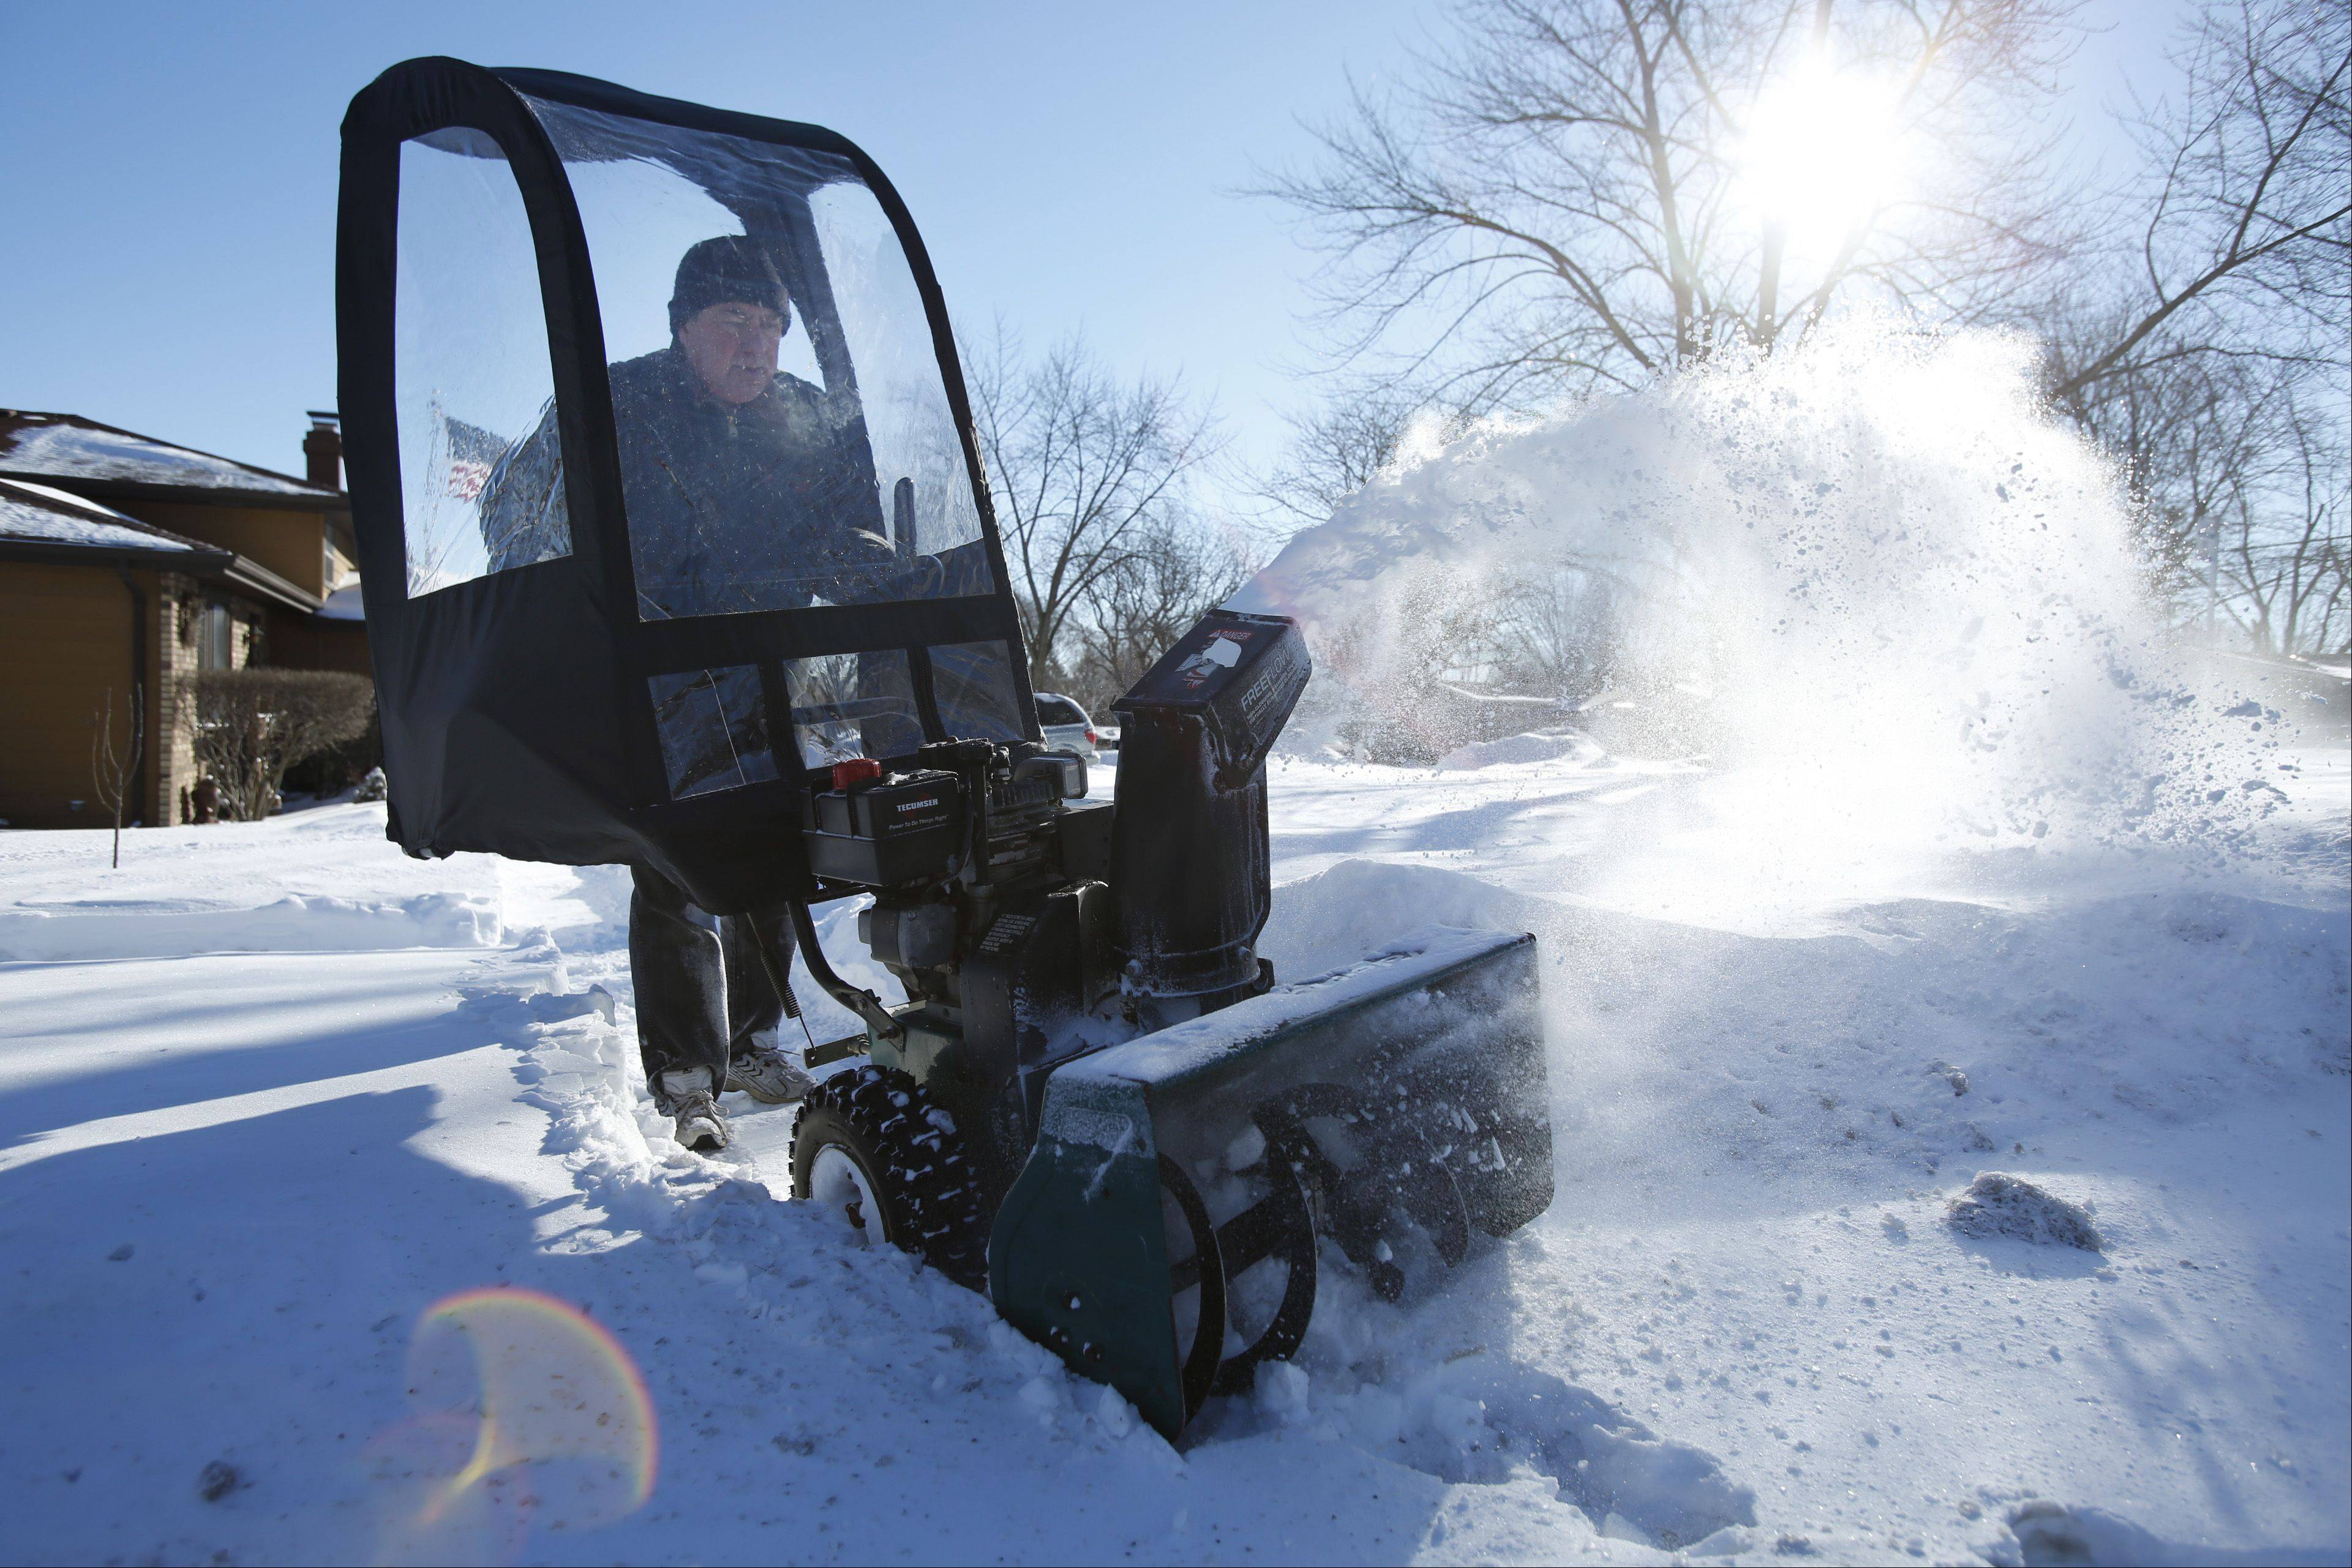 "Andy Patete, of South Elgin, blasts the new snow from the sidewalks Tuesday morning near his Spring Street home, behind the protection of a plastic shield affixed to his snow thrower. Patete said the shield does keep things a bit warmer for him while he works. ""At least it keeps the snow from blowing in your face,"" he said."